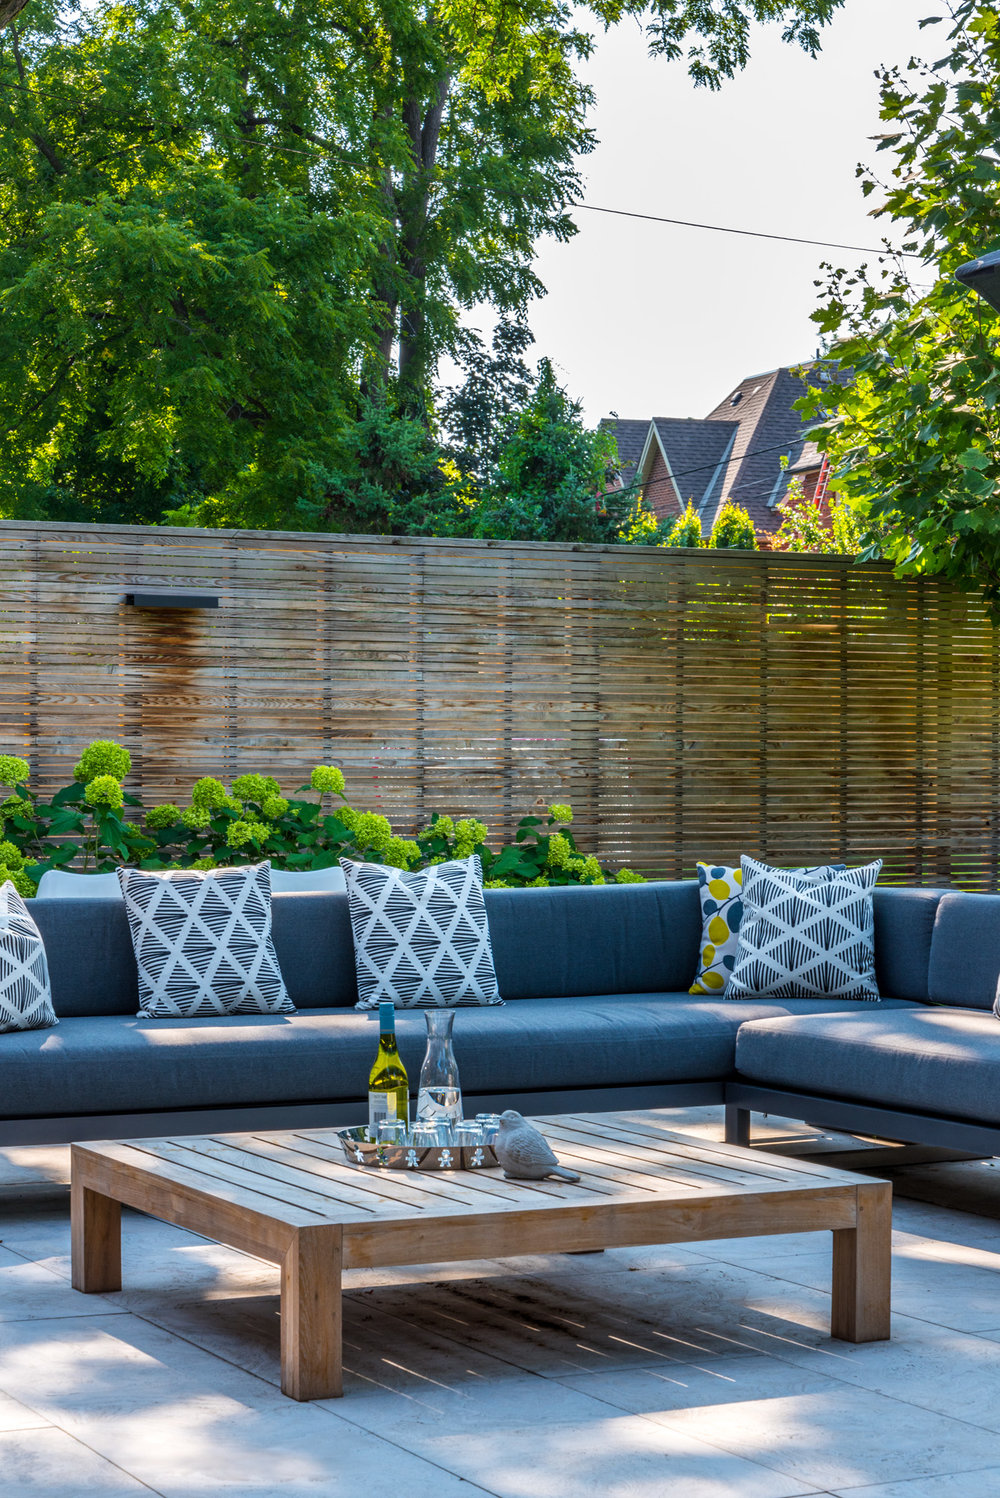 Cricket Club House Backyard Sectional